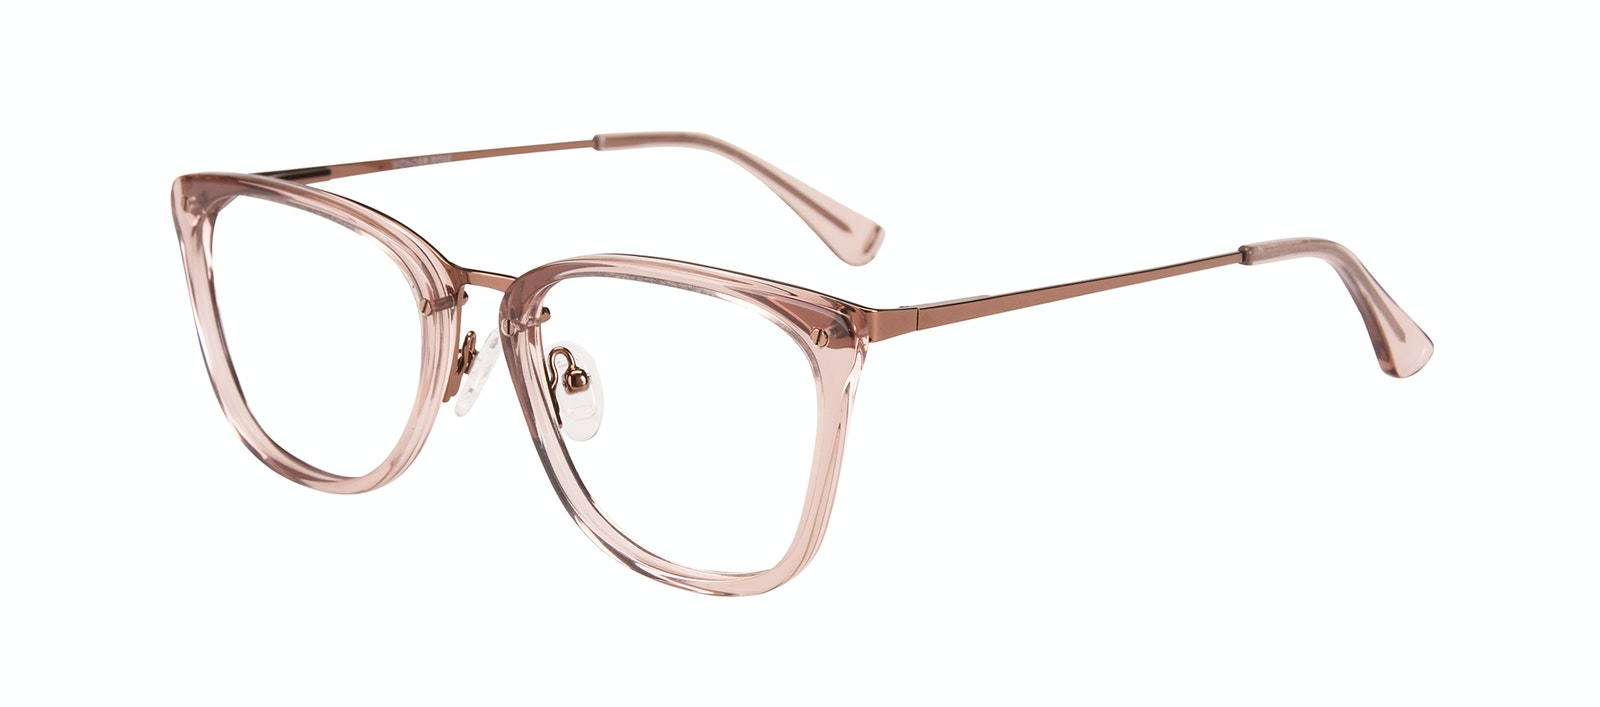 Affordable Fashion Glasses Rectangle Eyeglasses Women Wonder Rose Tilt